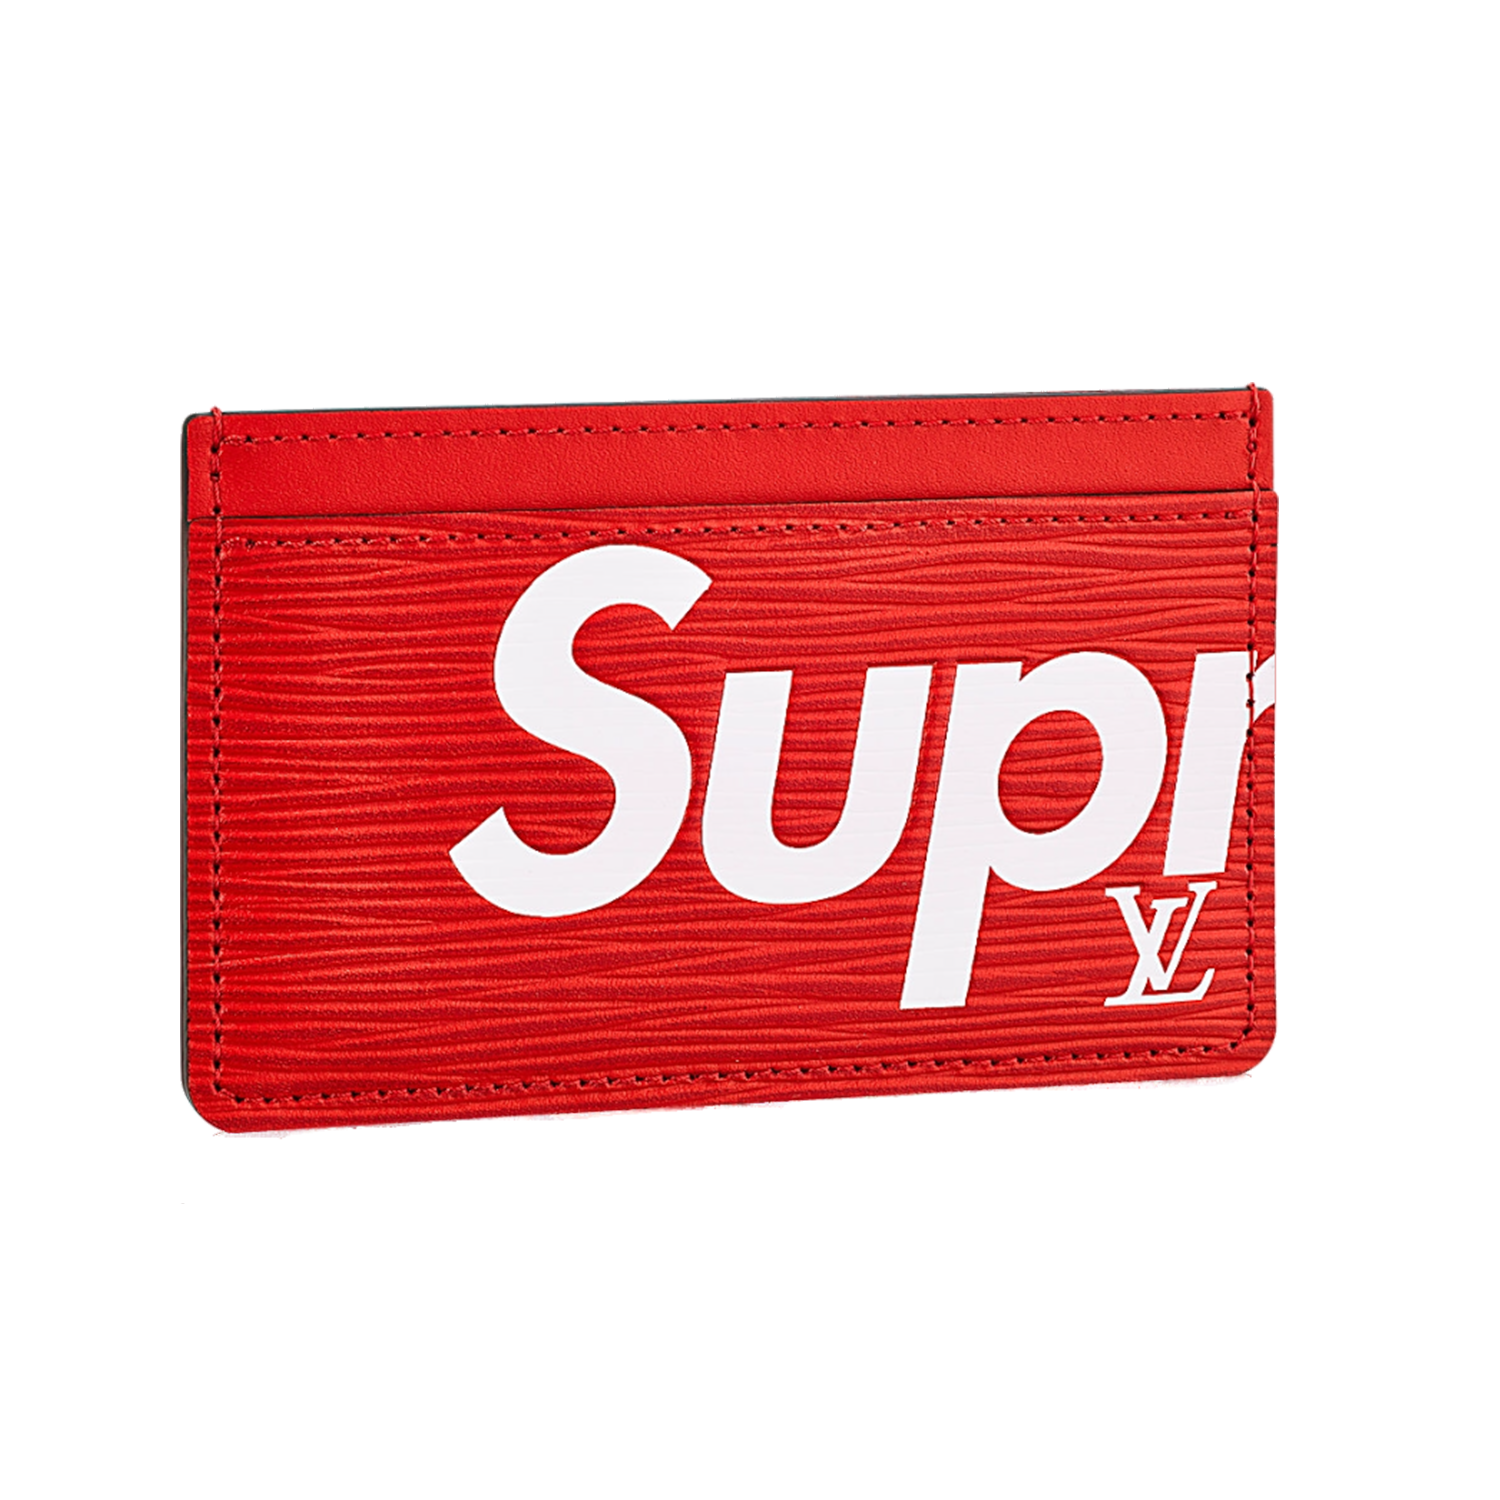 SUPREME PORTE CARTE SIMPLE - €205 $305M67712EPI RED